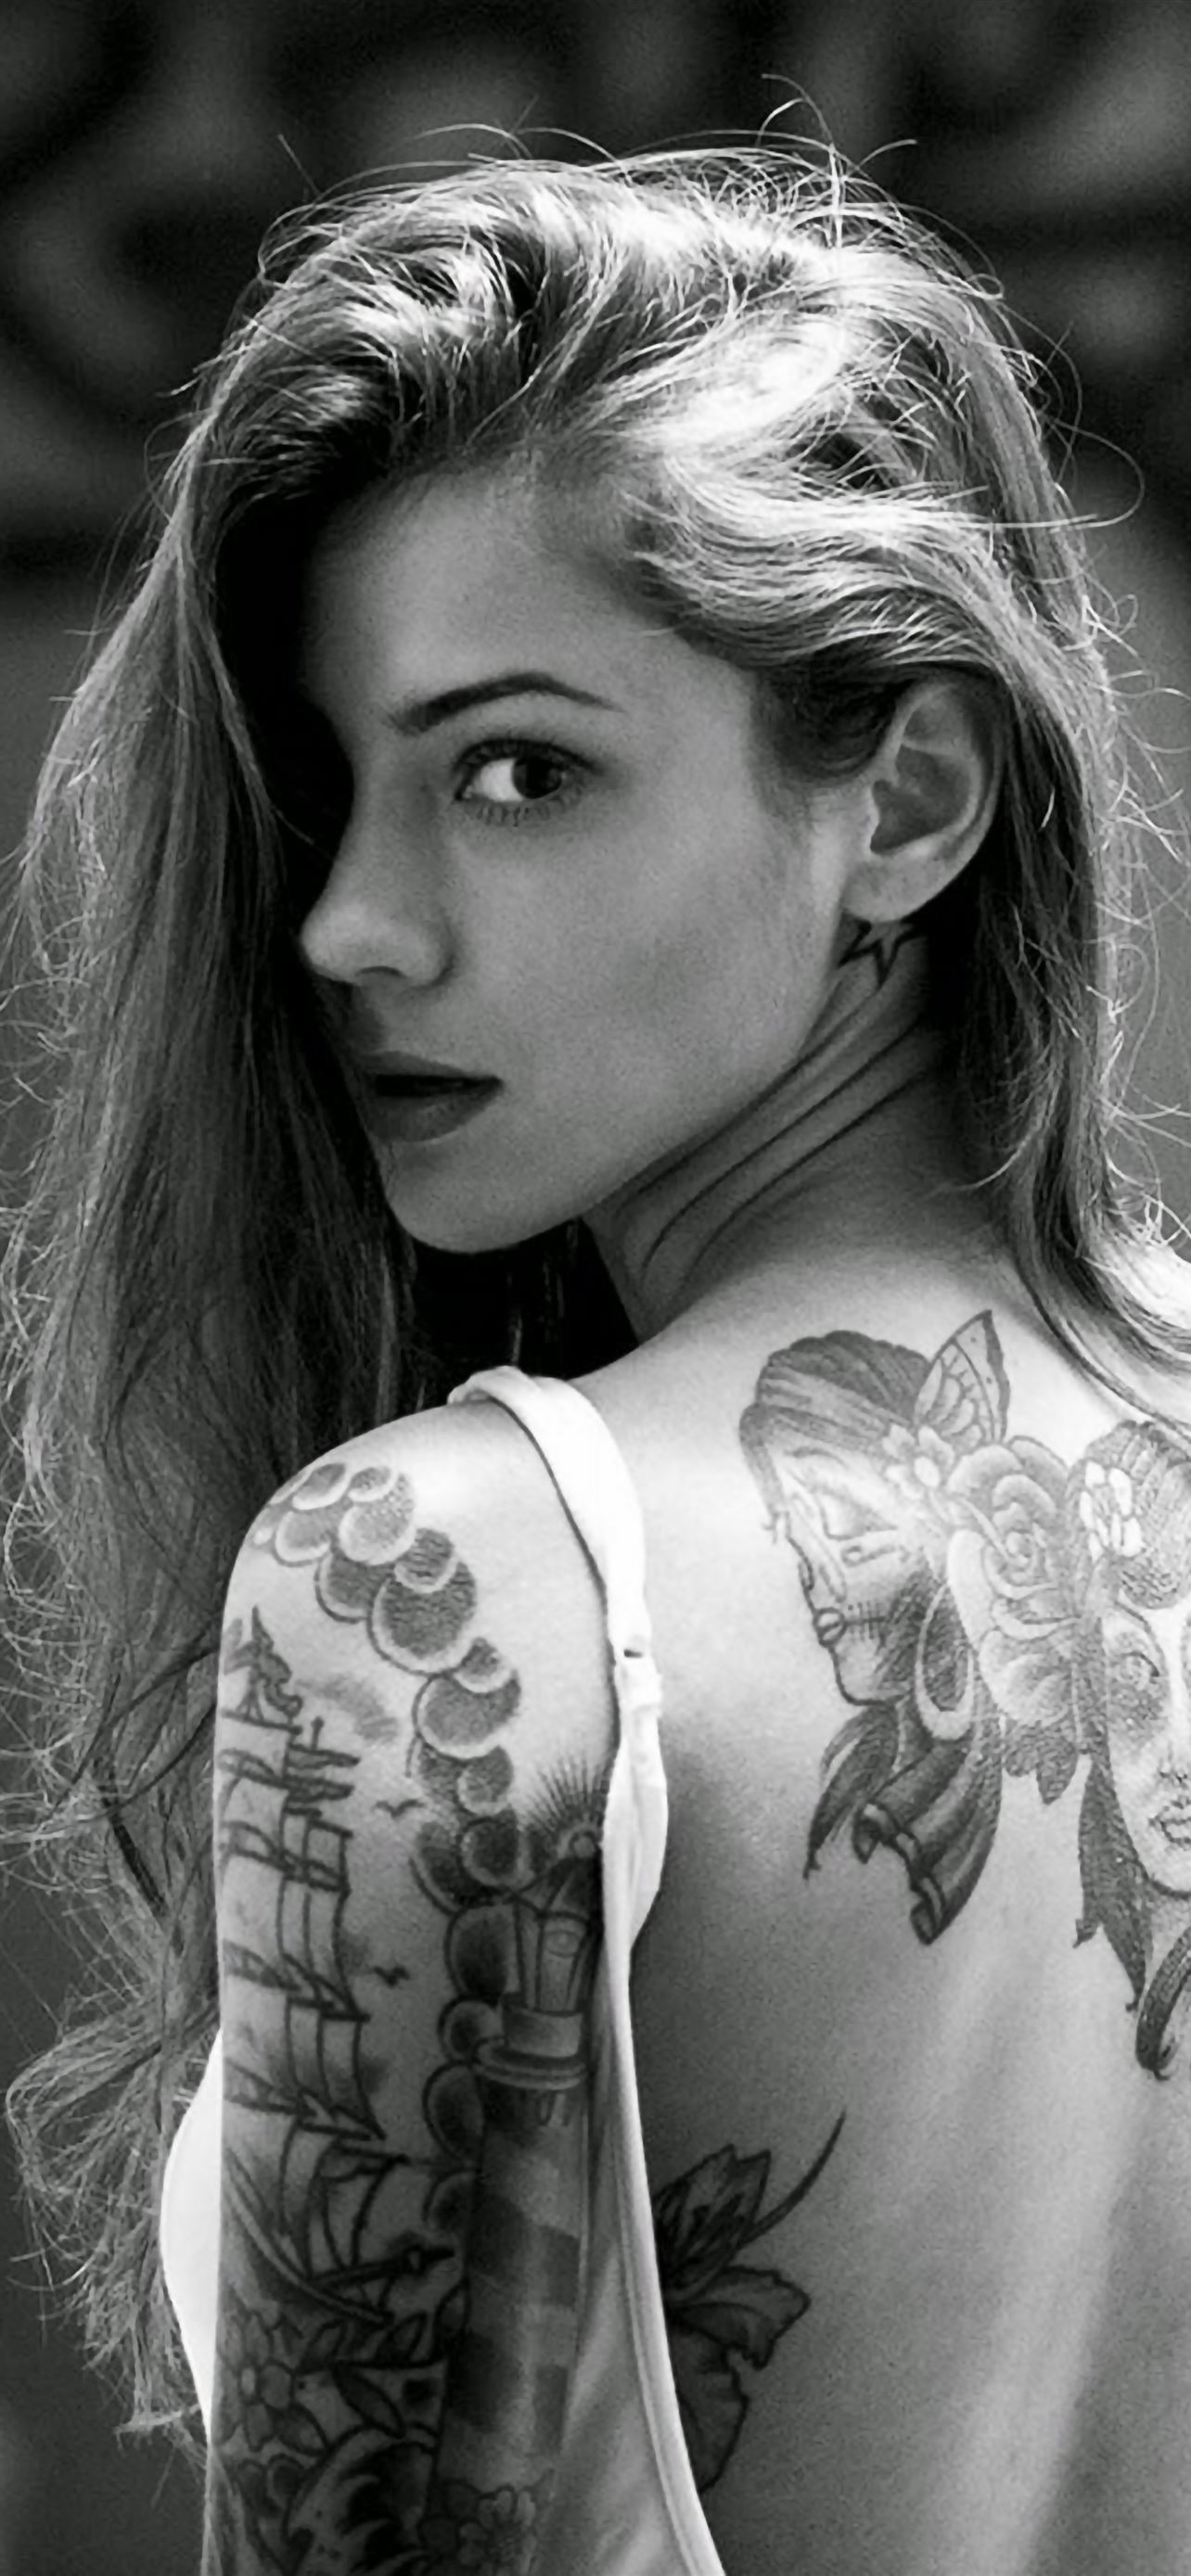 beautiful girl tattooed back iphone se wallpaper download | iphone